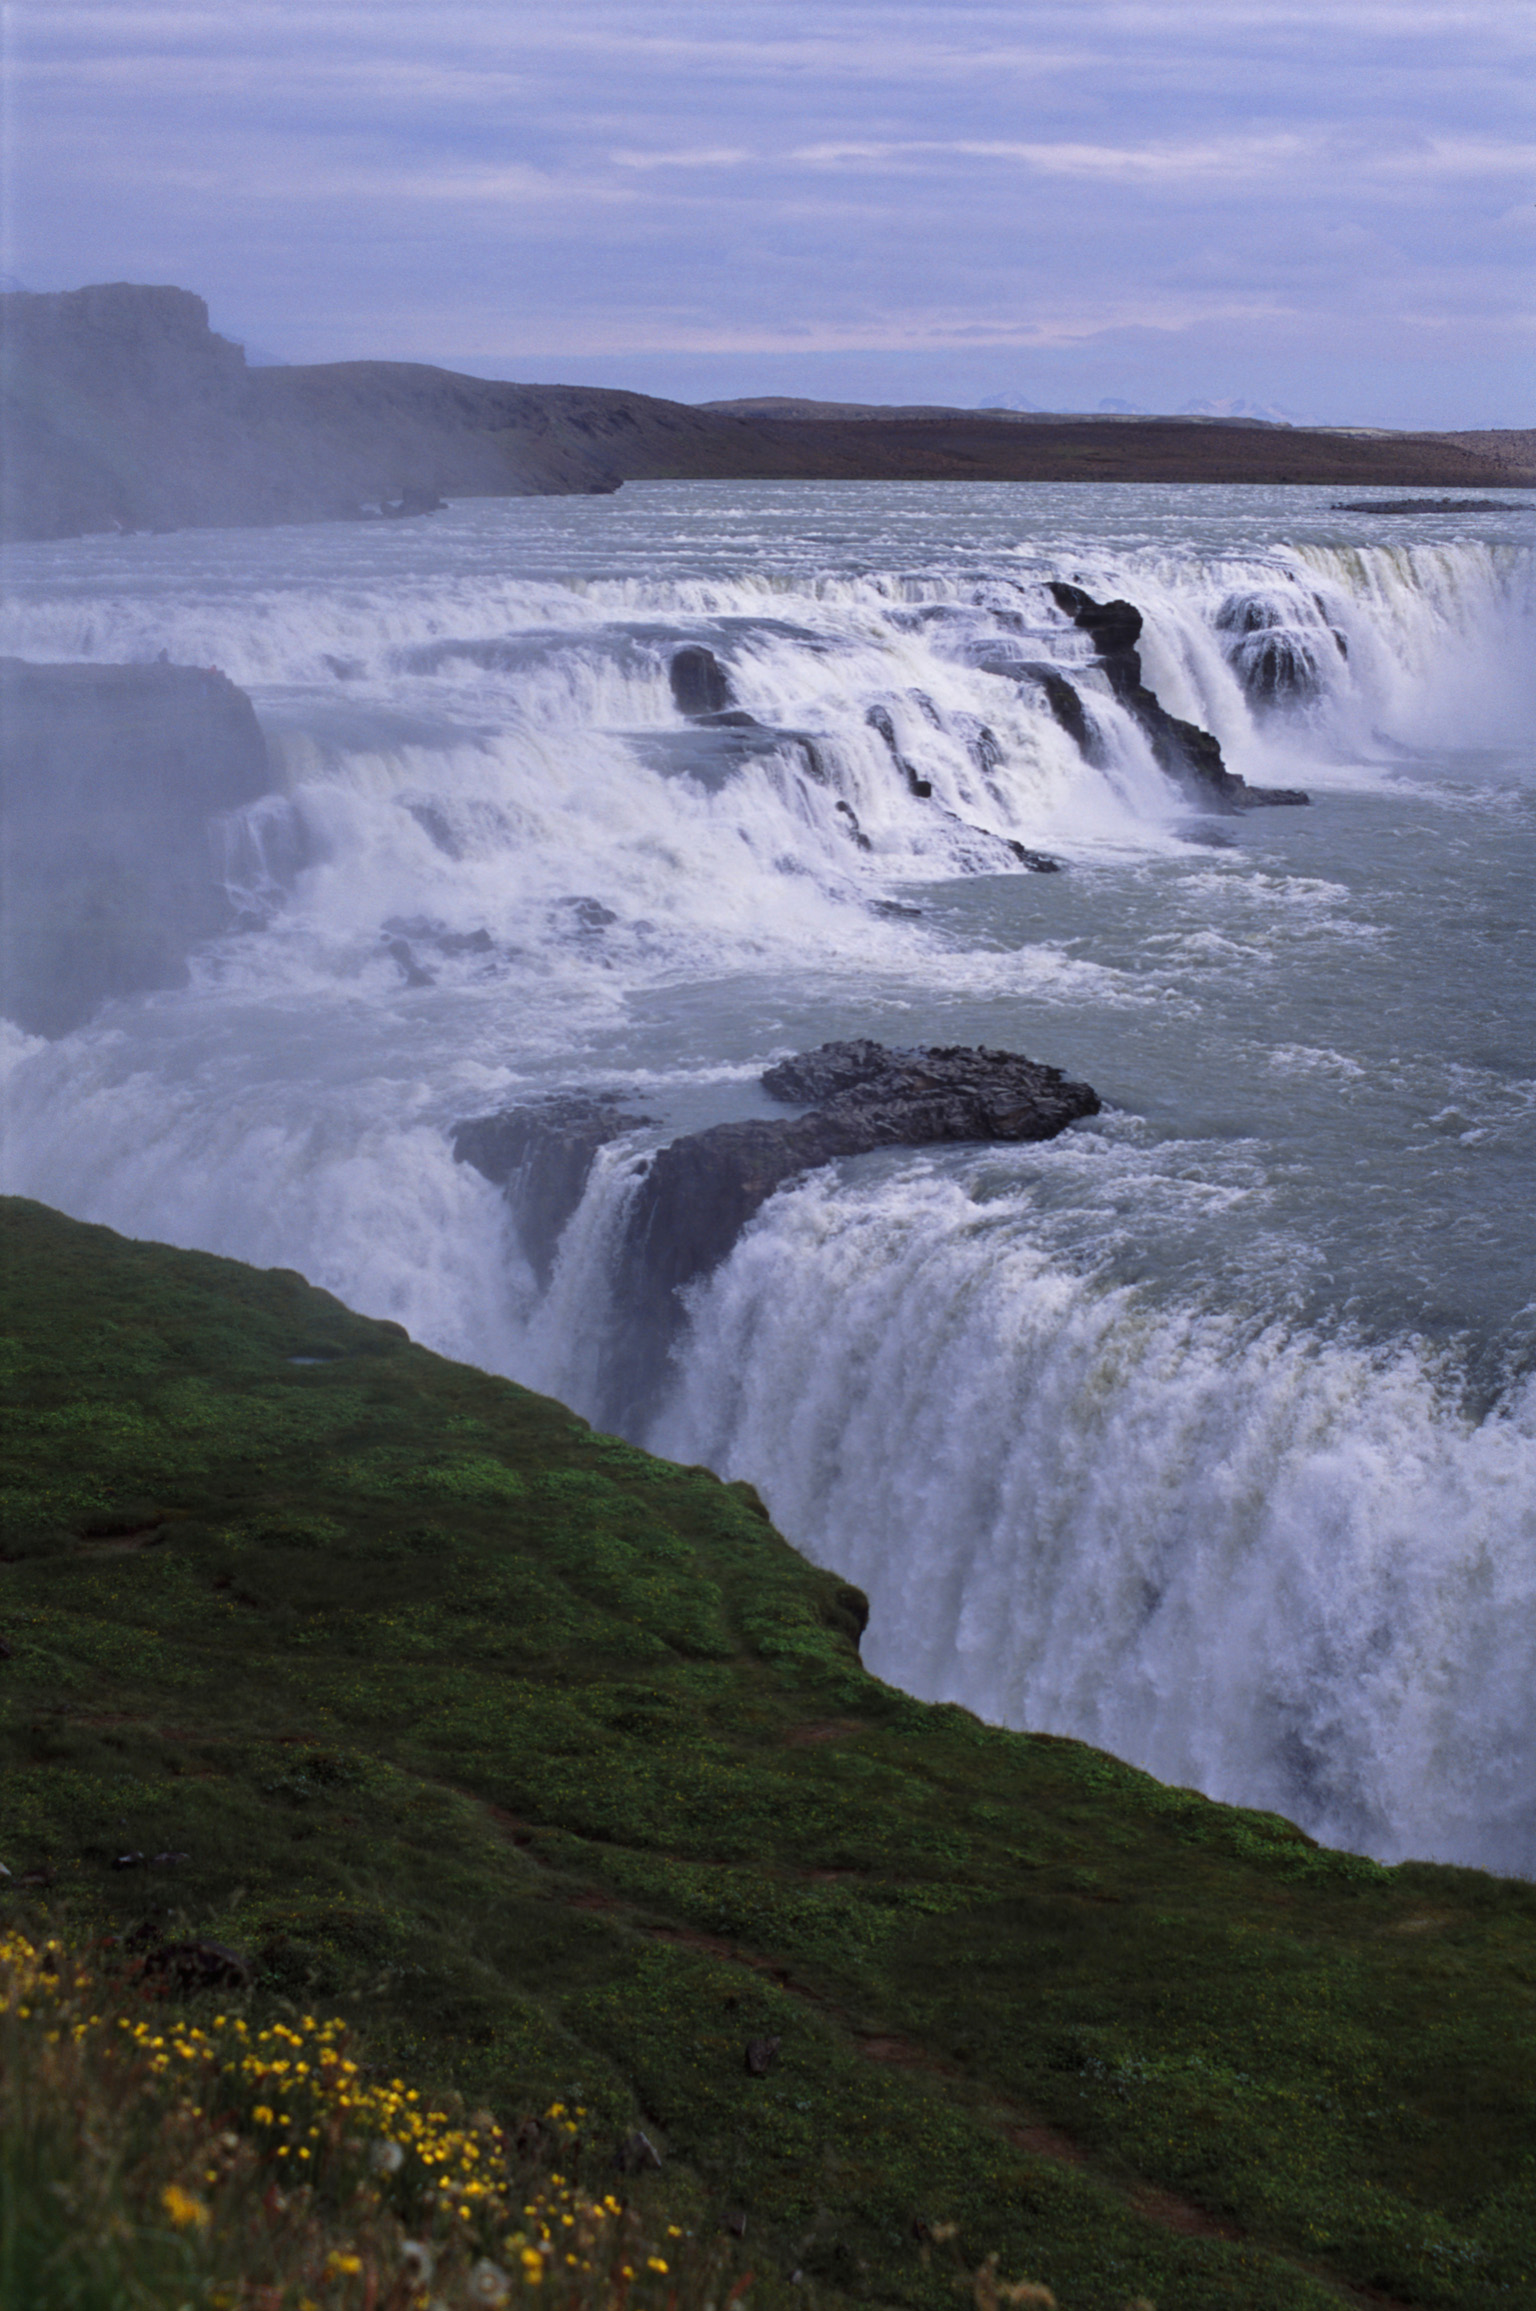 Overview of Rushing Water of Hvita River over Gullfoss Falls in Iceland